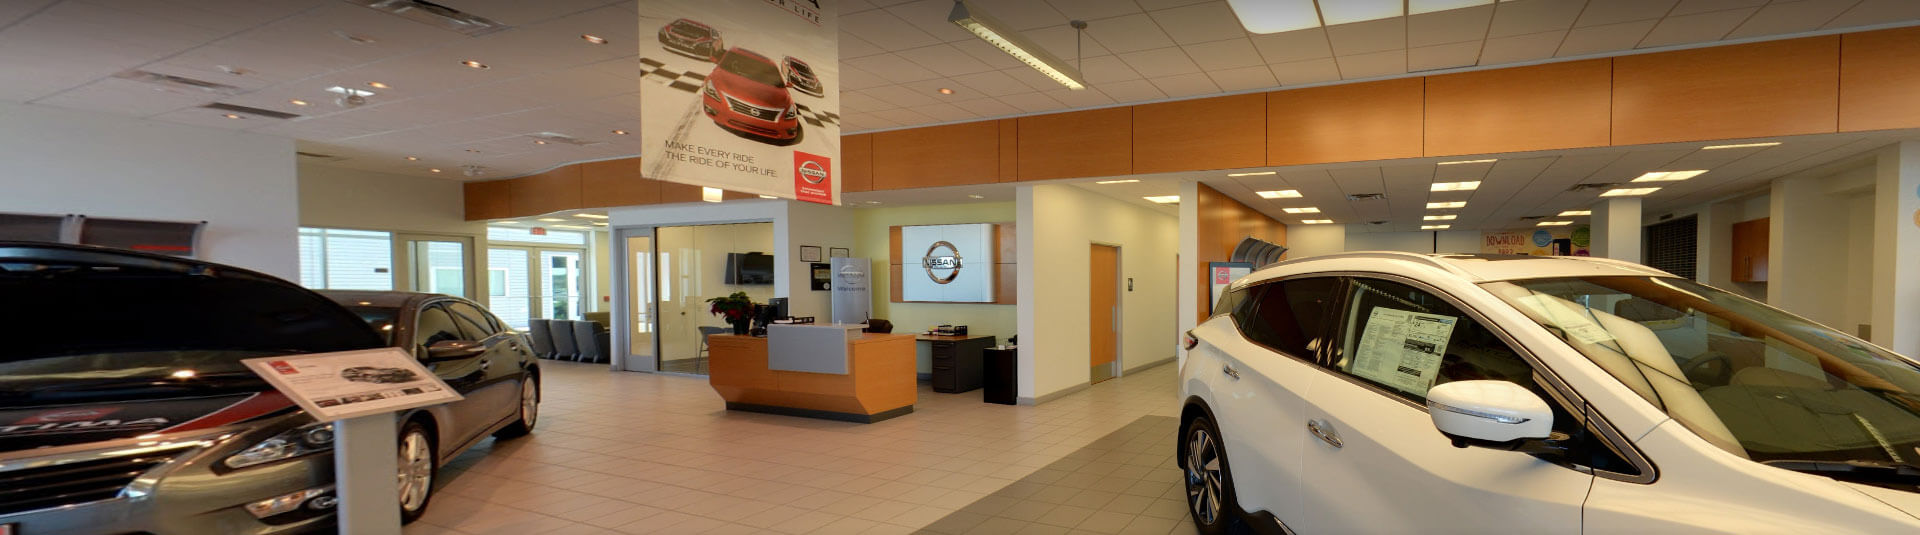 Nissan At Group 1 Automotive